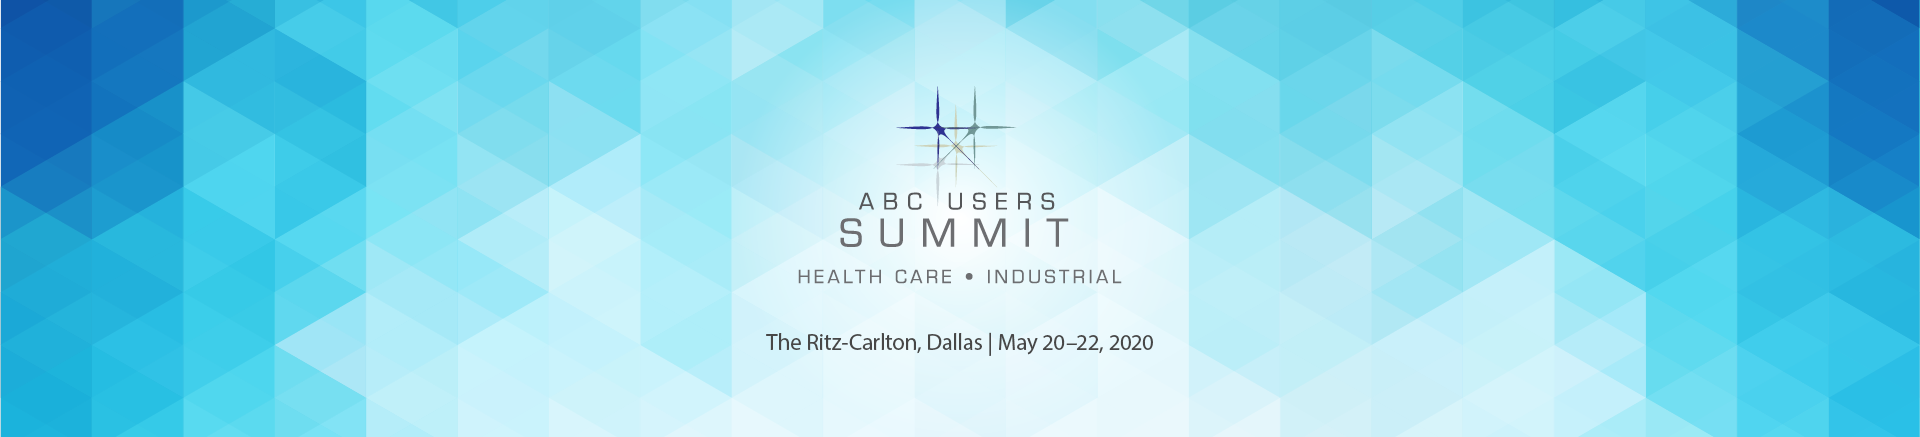 2020 ABC Users Summit